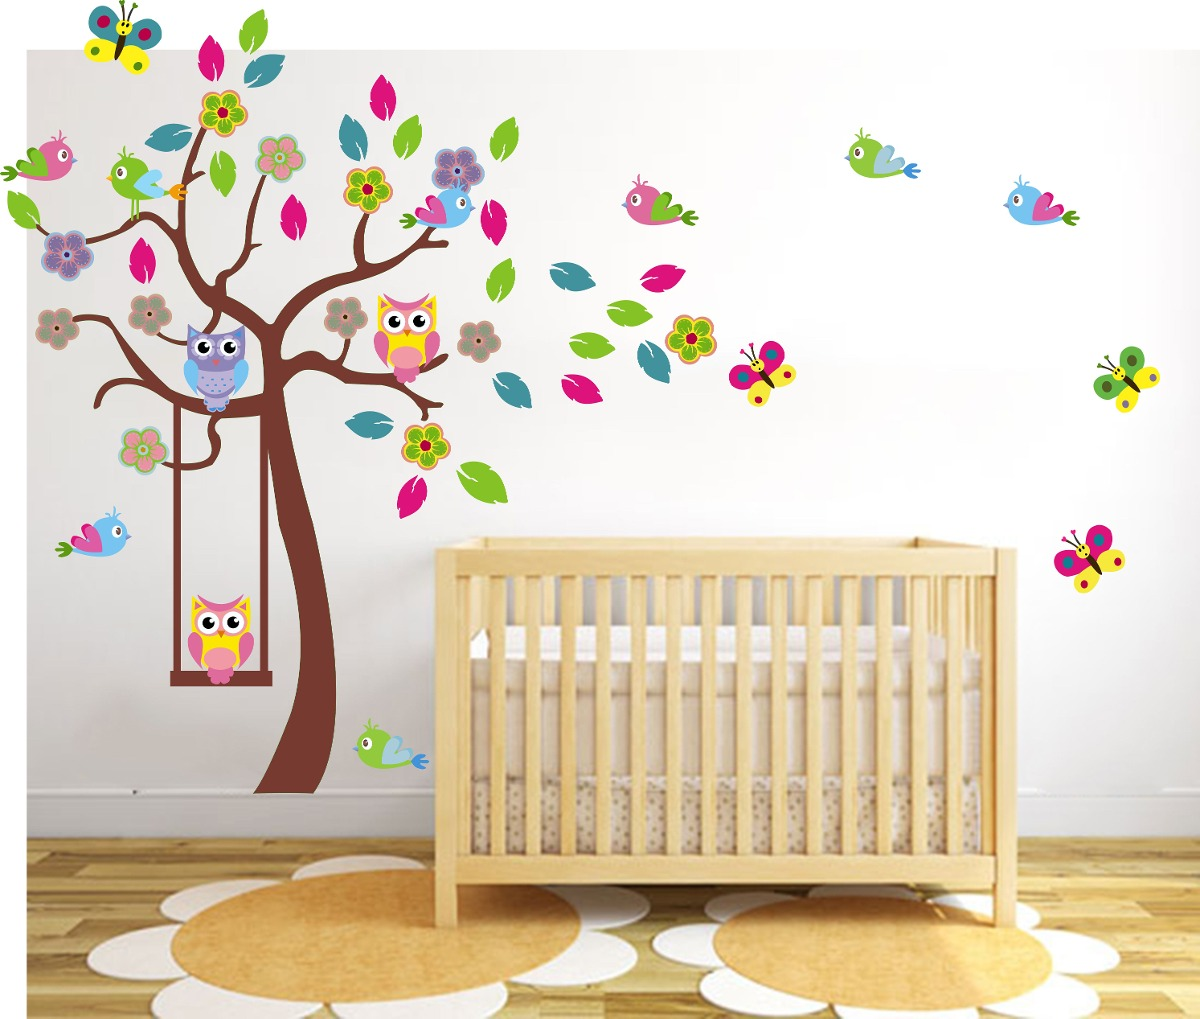 Decoracion pared infantil finest decoracion dormitorios - Ideas para decorar habitacion infantil ...